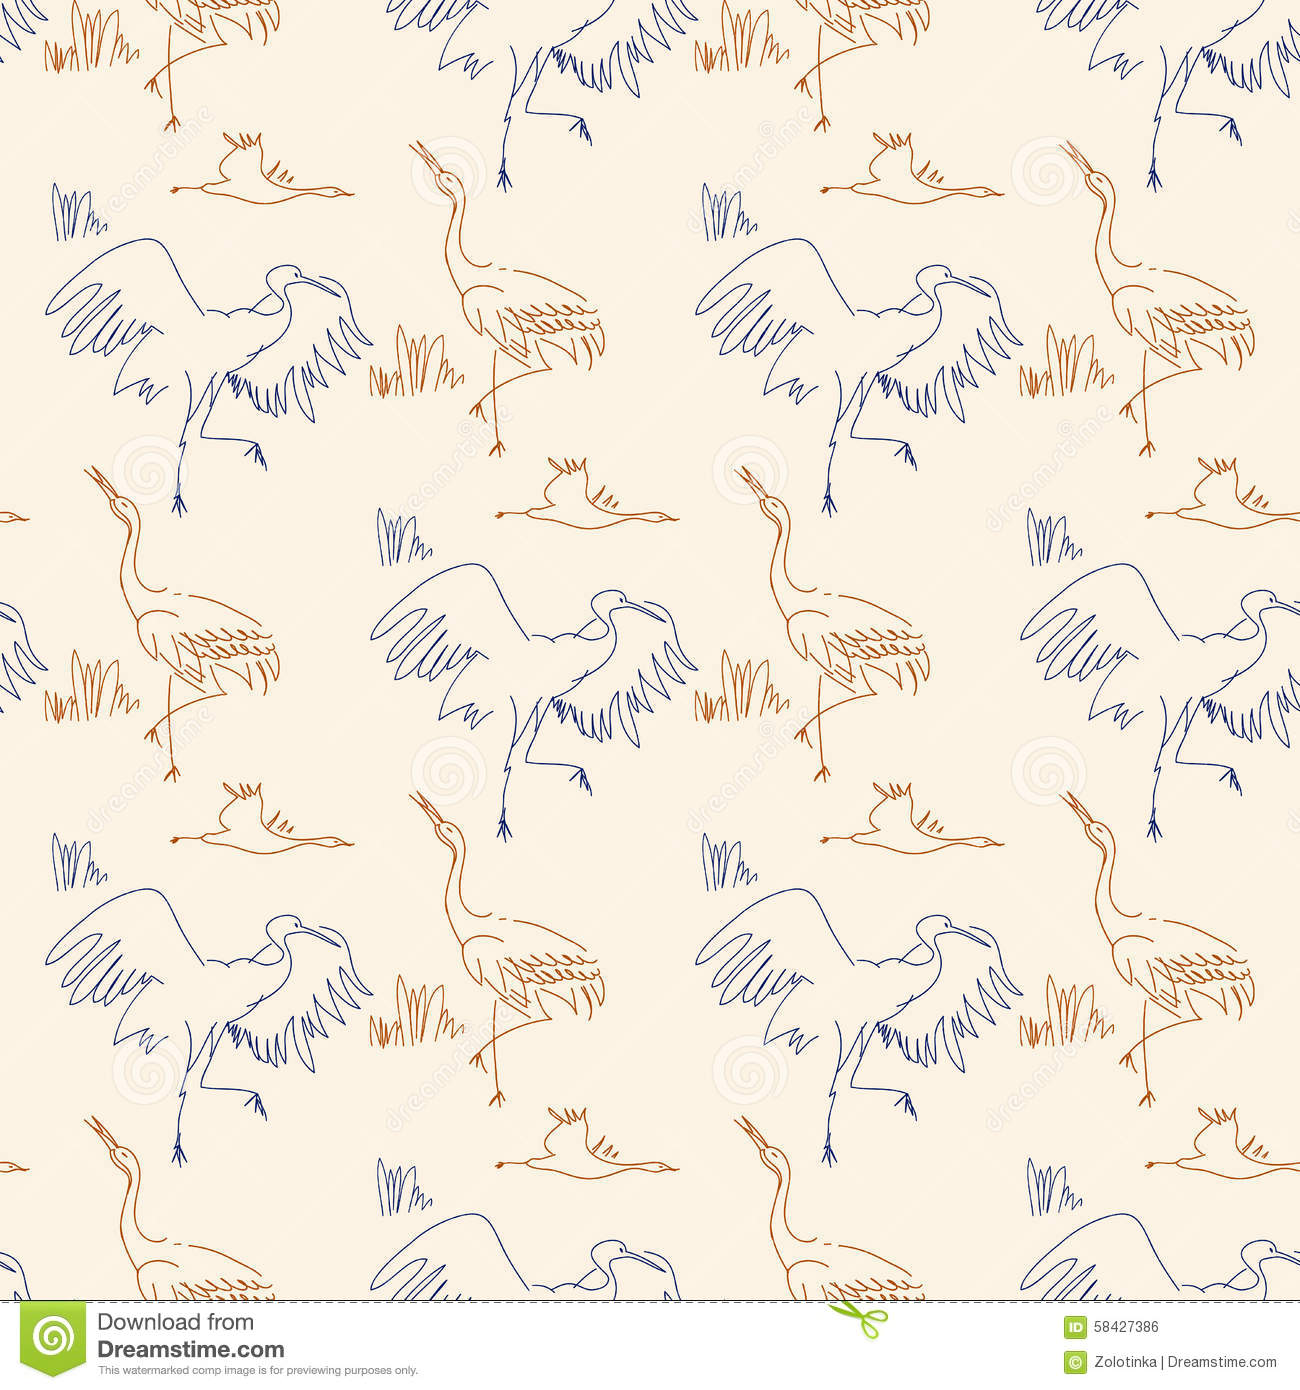 Contour Line Drawing Bird : Seamless pattern with birds stock illustration image